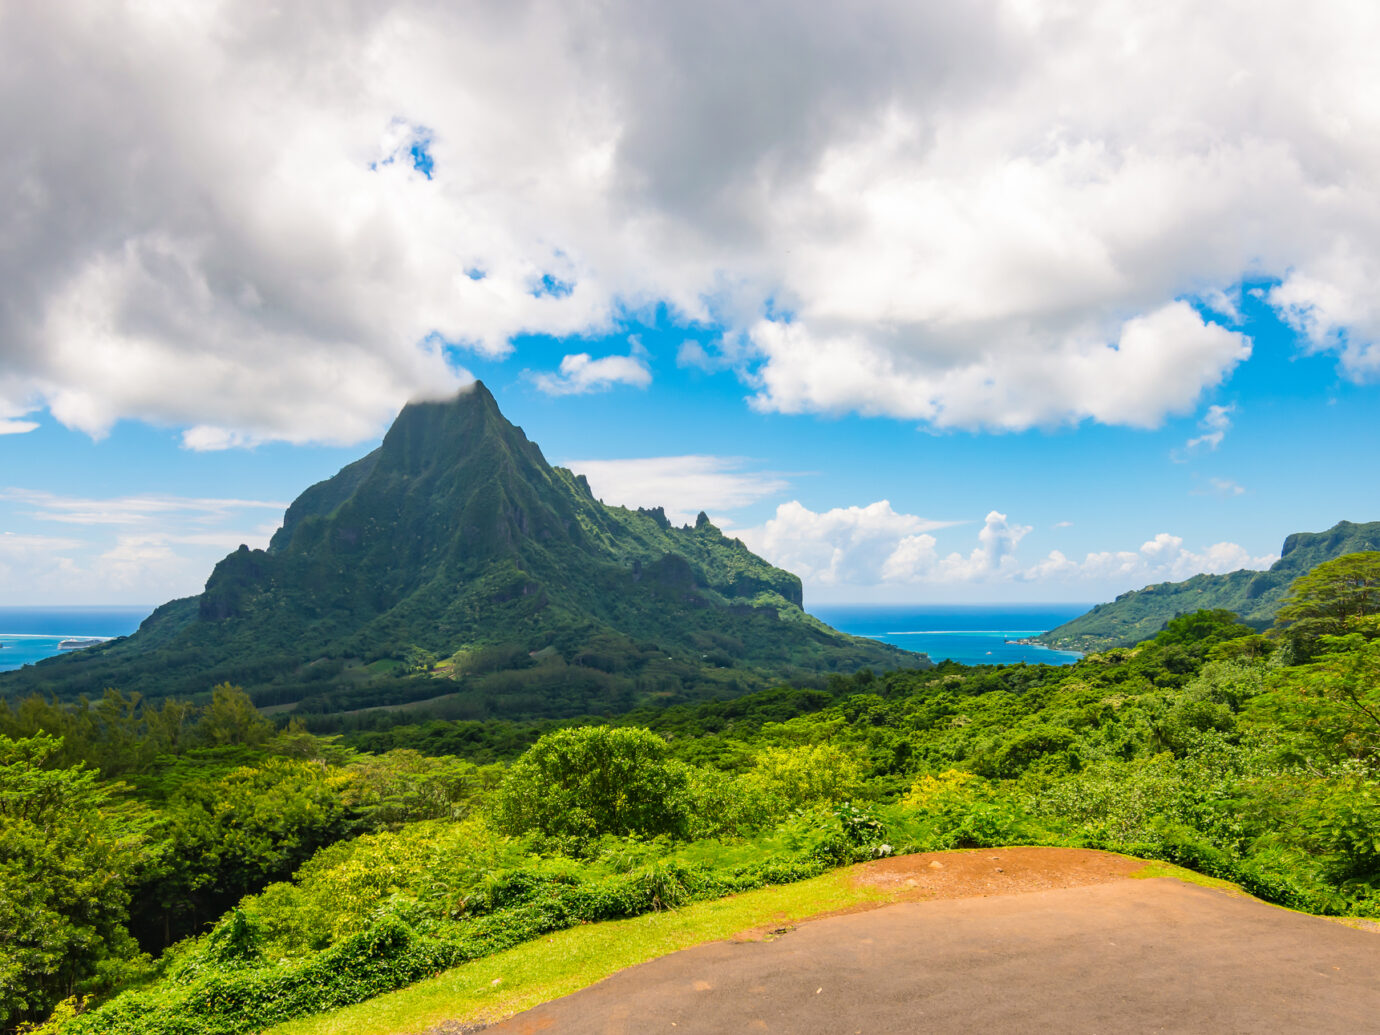 Mountain with two oceans on the side. Vewpoint with mountain landscape of Moorea, French Polynesia. Blue sky with clouds. Cruise destination.